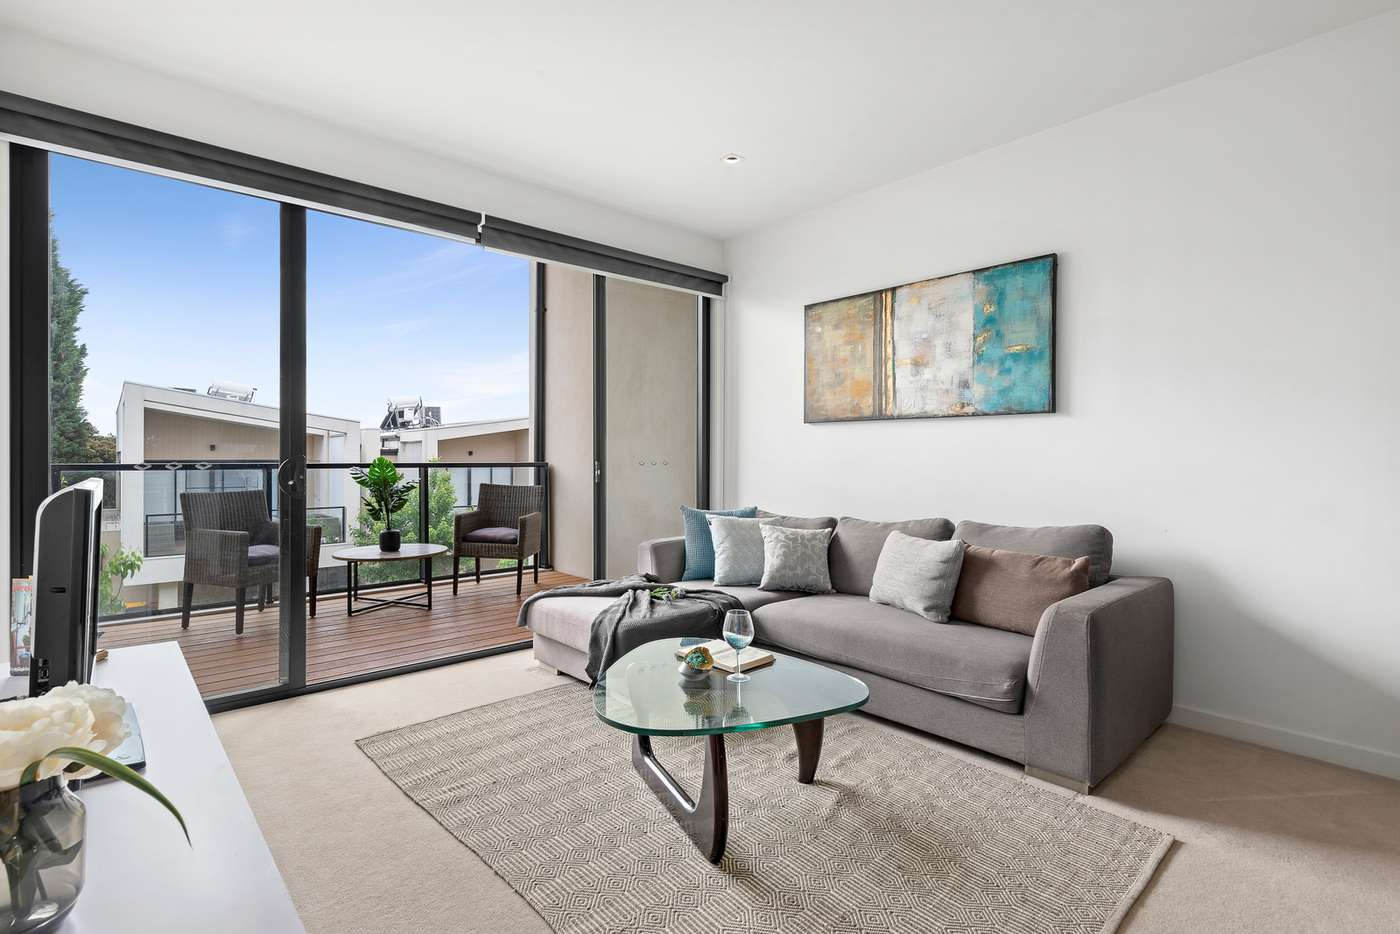 Main view of Homely house listing, 10 Oak Terrace, Wheelers Hill VIC 3150